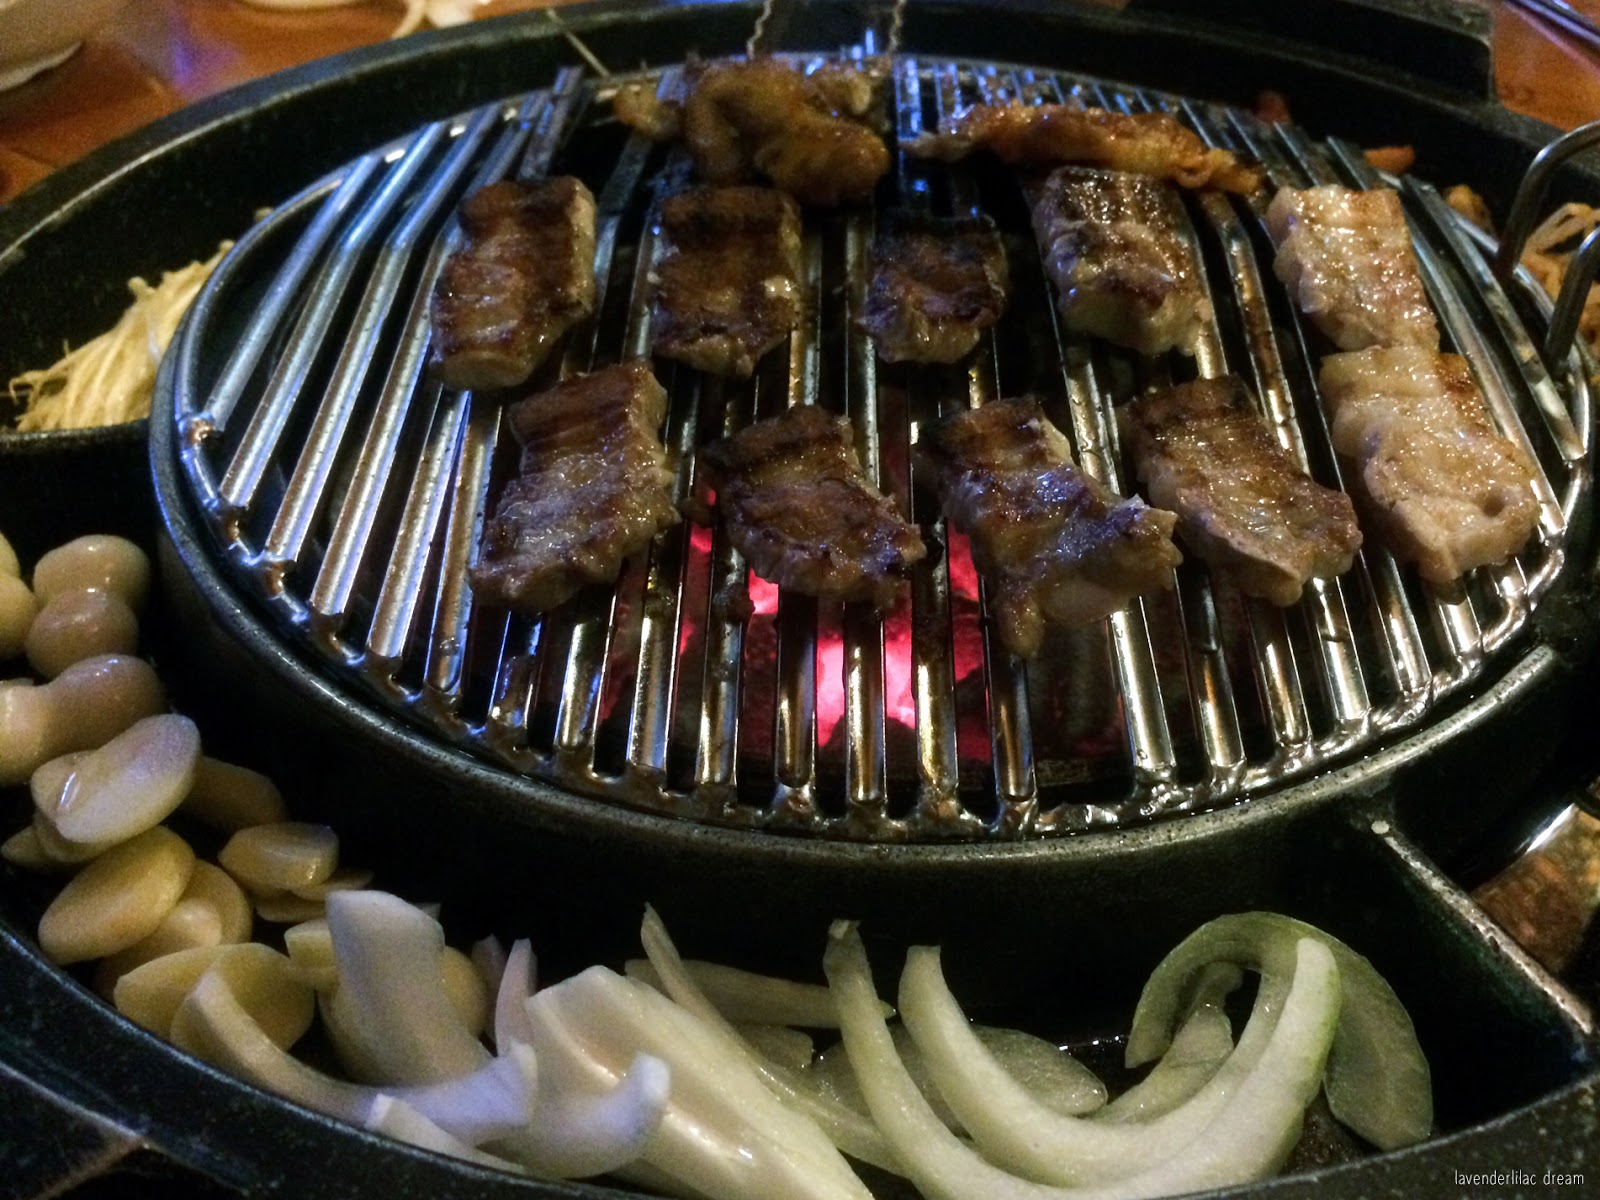 South Korea, Seoul, Sinchon, YISS 2014, Jadamhwaro KBBQ - Samgyupsal Pork Belly